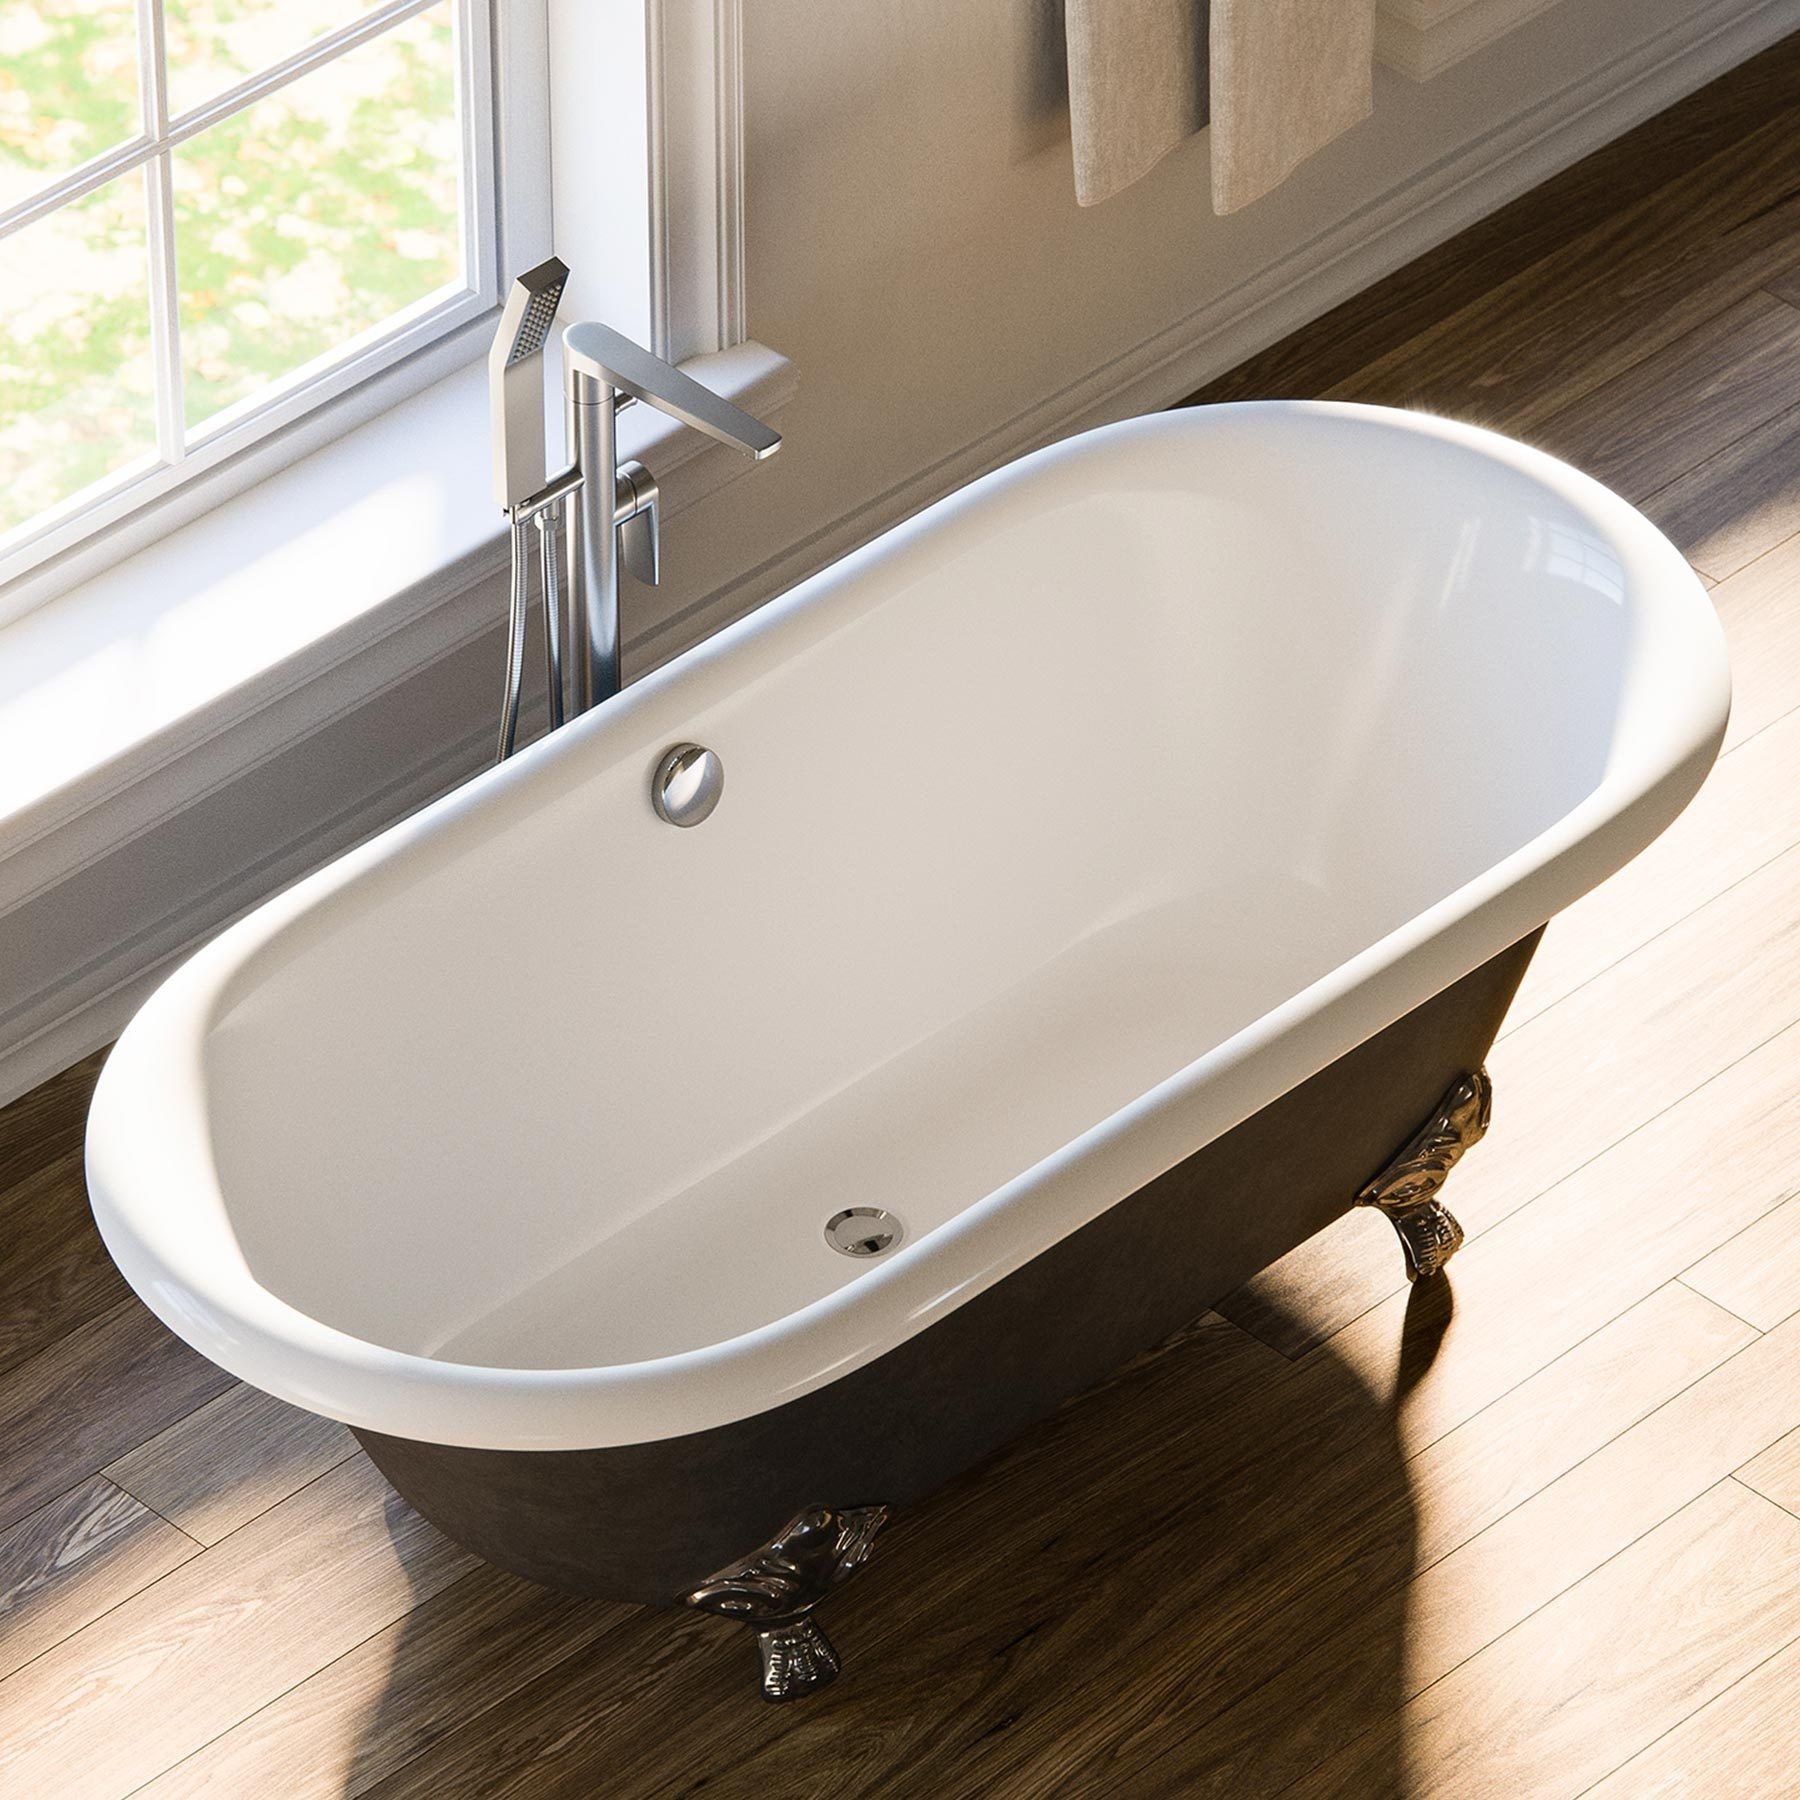 delta questions enter here image bathtub plumbing handle description home stopper faucet unaligned